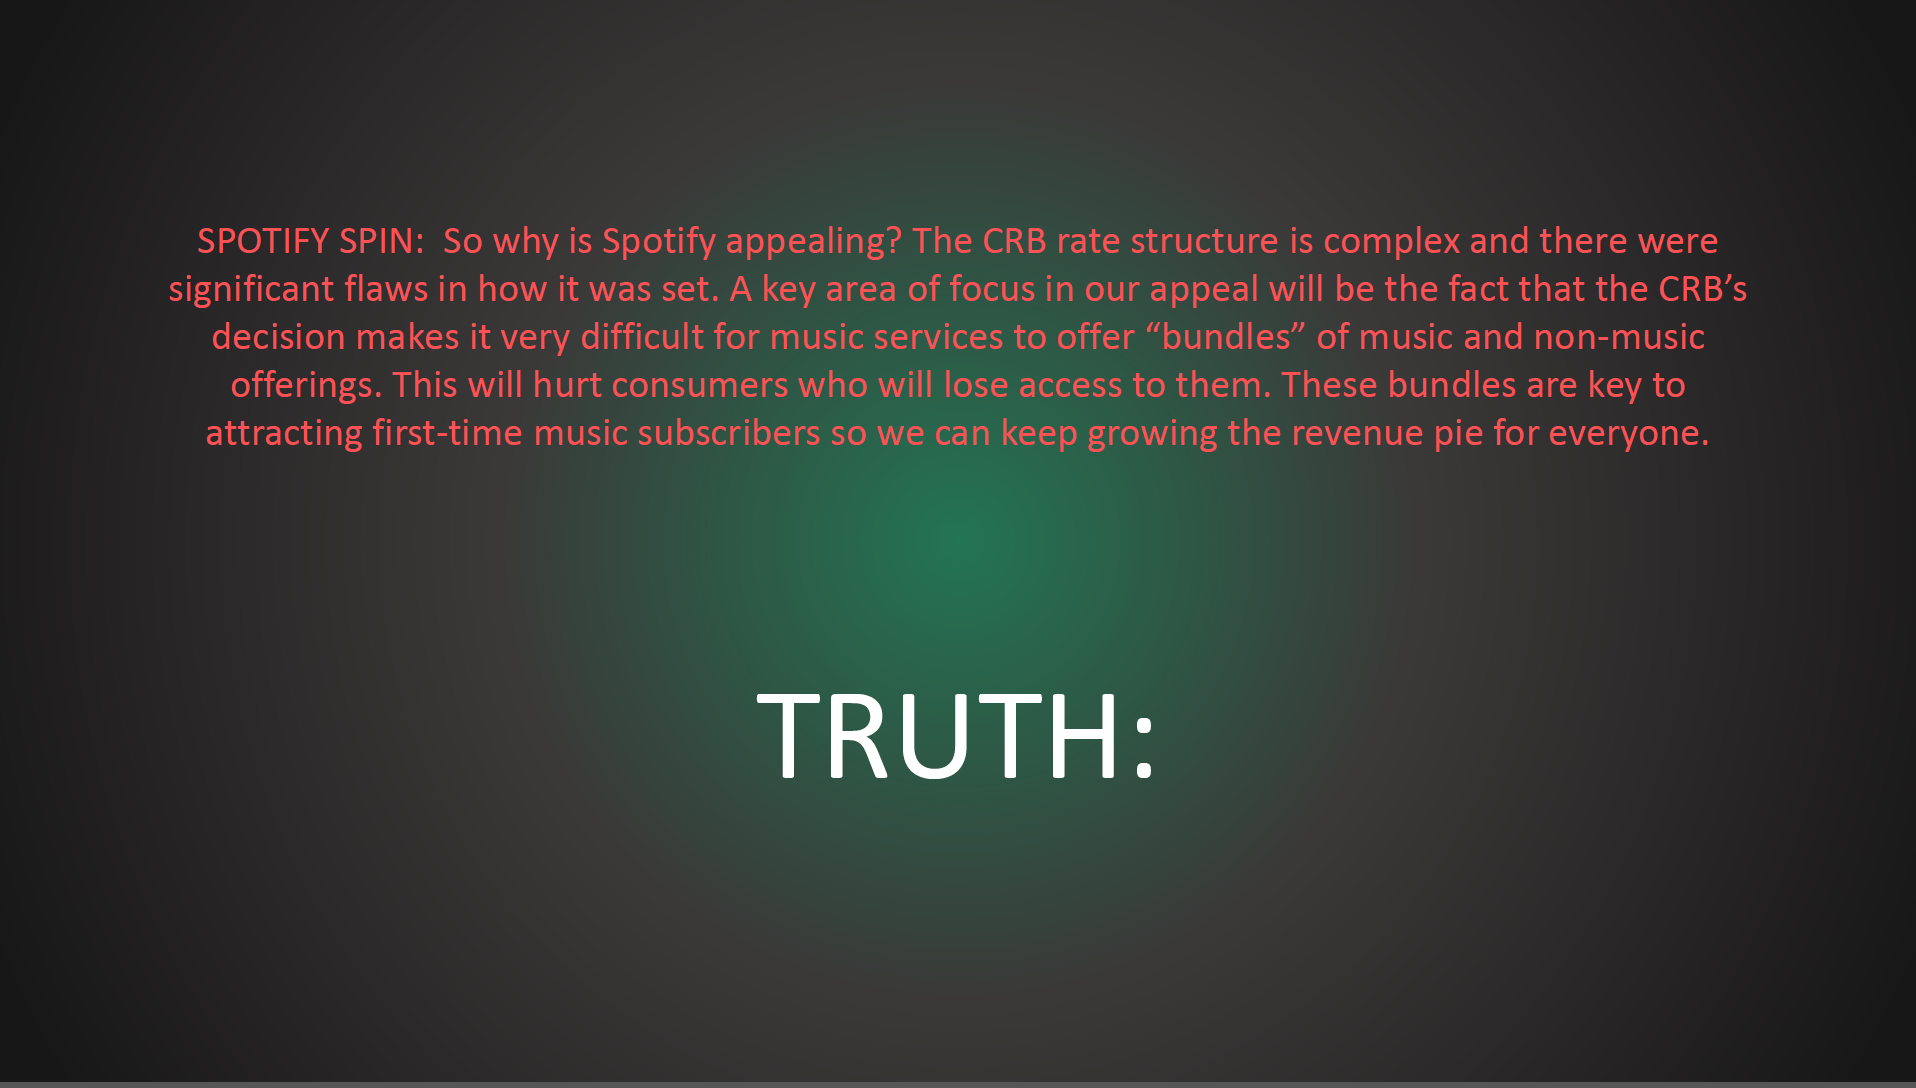 Spotify spin 4.png